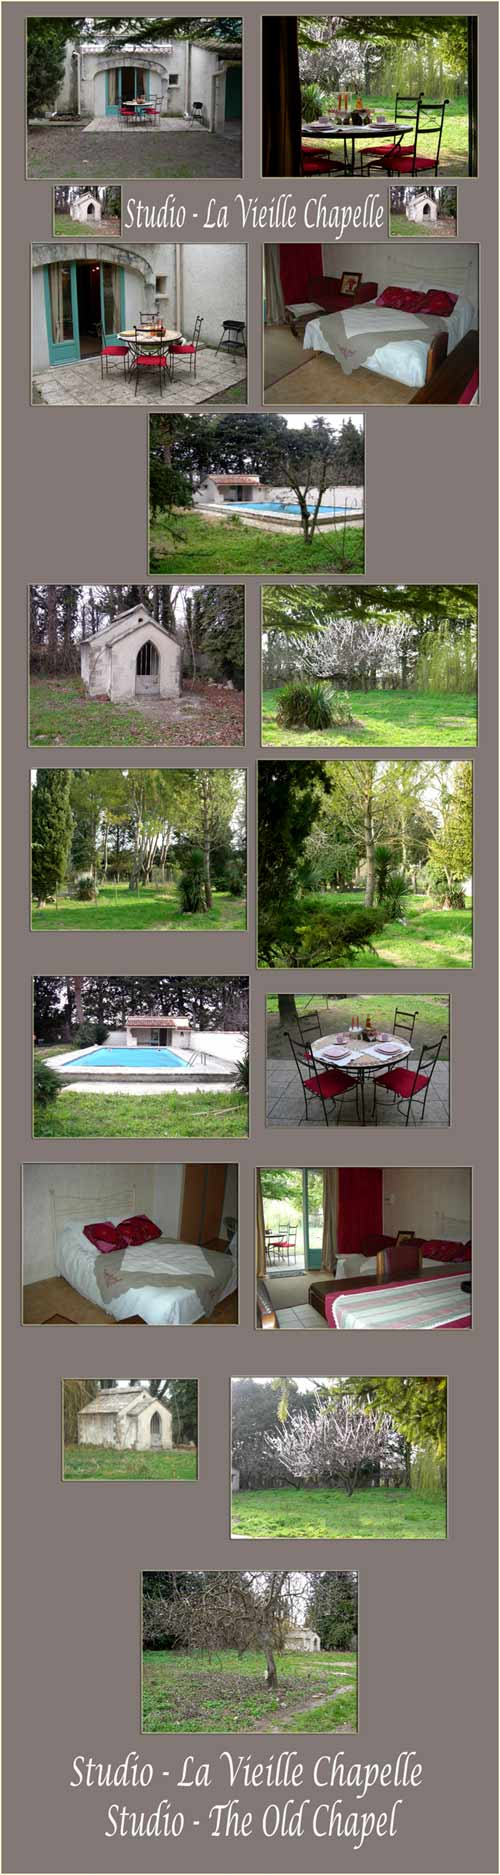 Provence studio with pool, old chapel, horses, bicycles, adjacent tennis, almond trees, plus